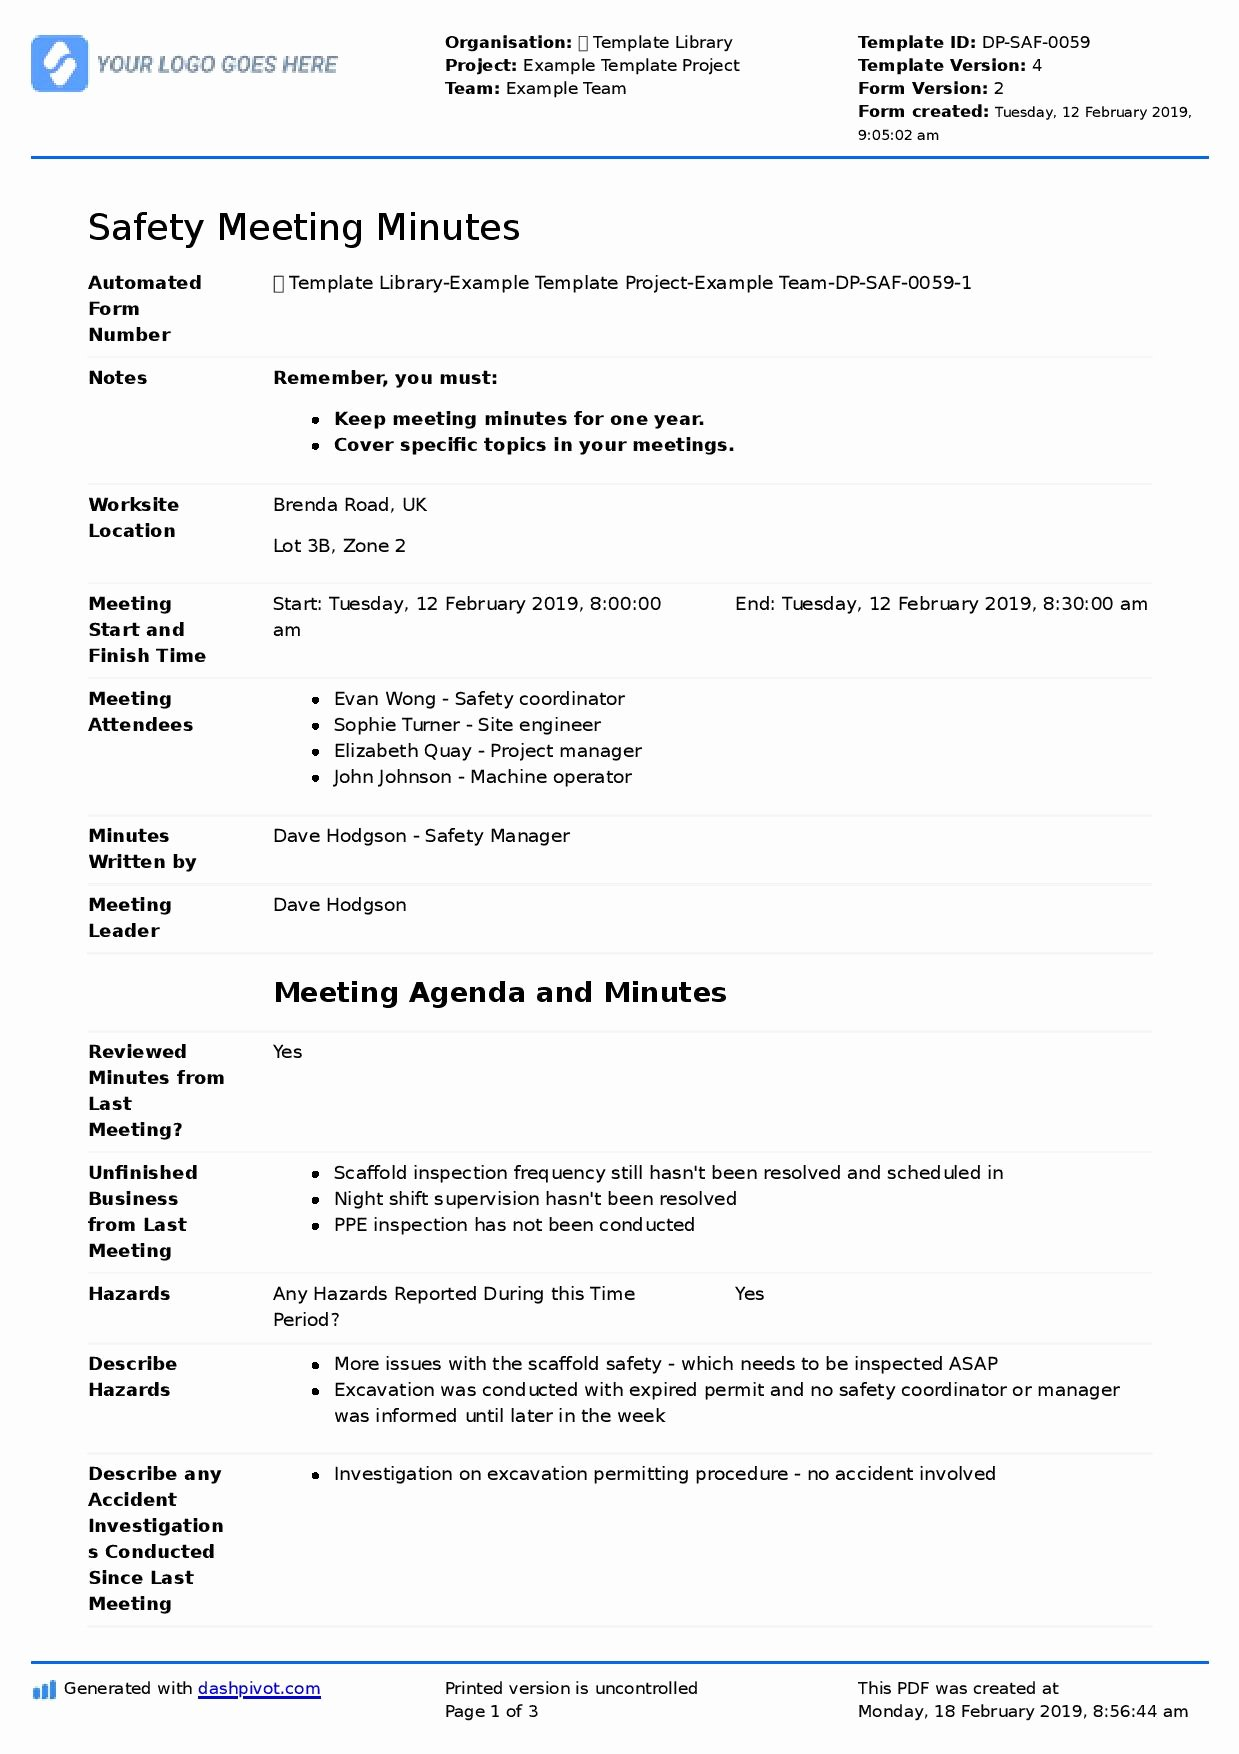 Meeting Minutes Agenda Template Lovely Minutes Of Health and Safety Meeting Template Free and